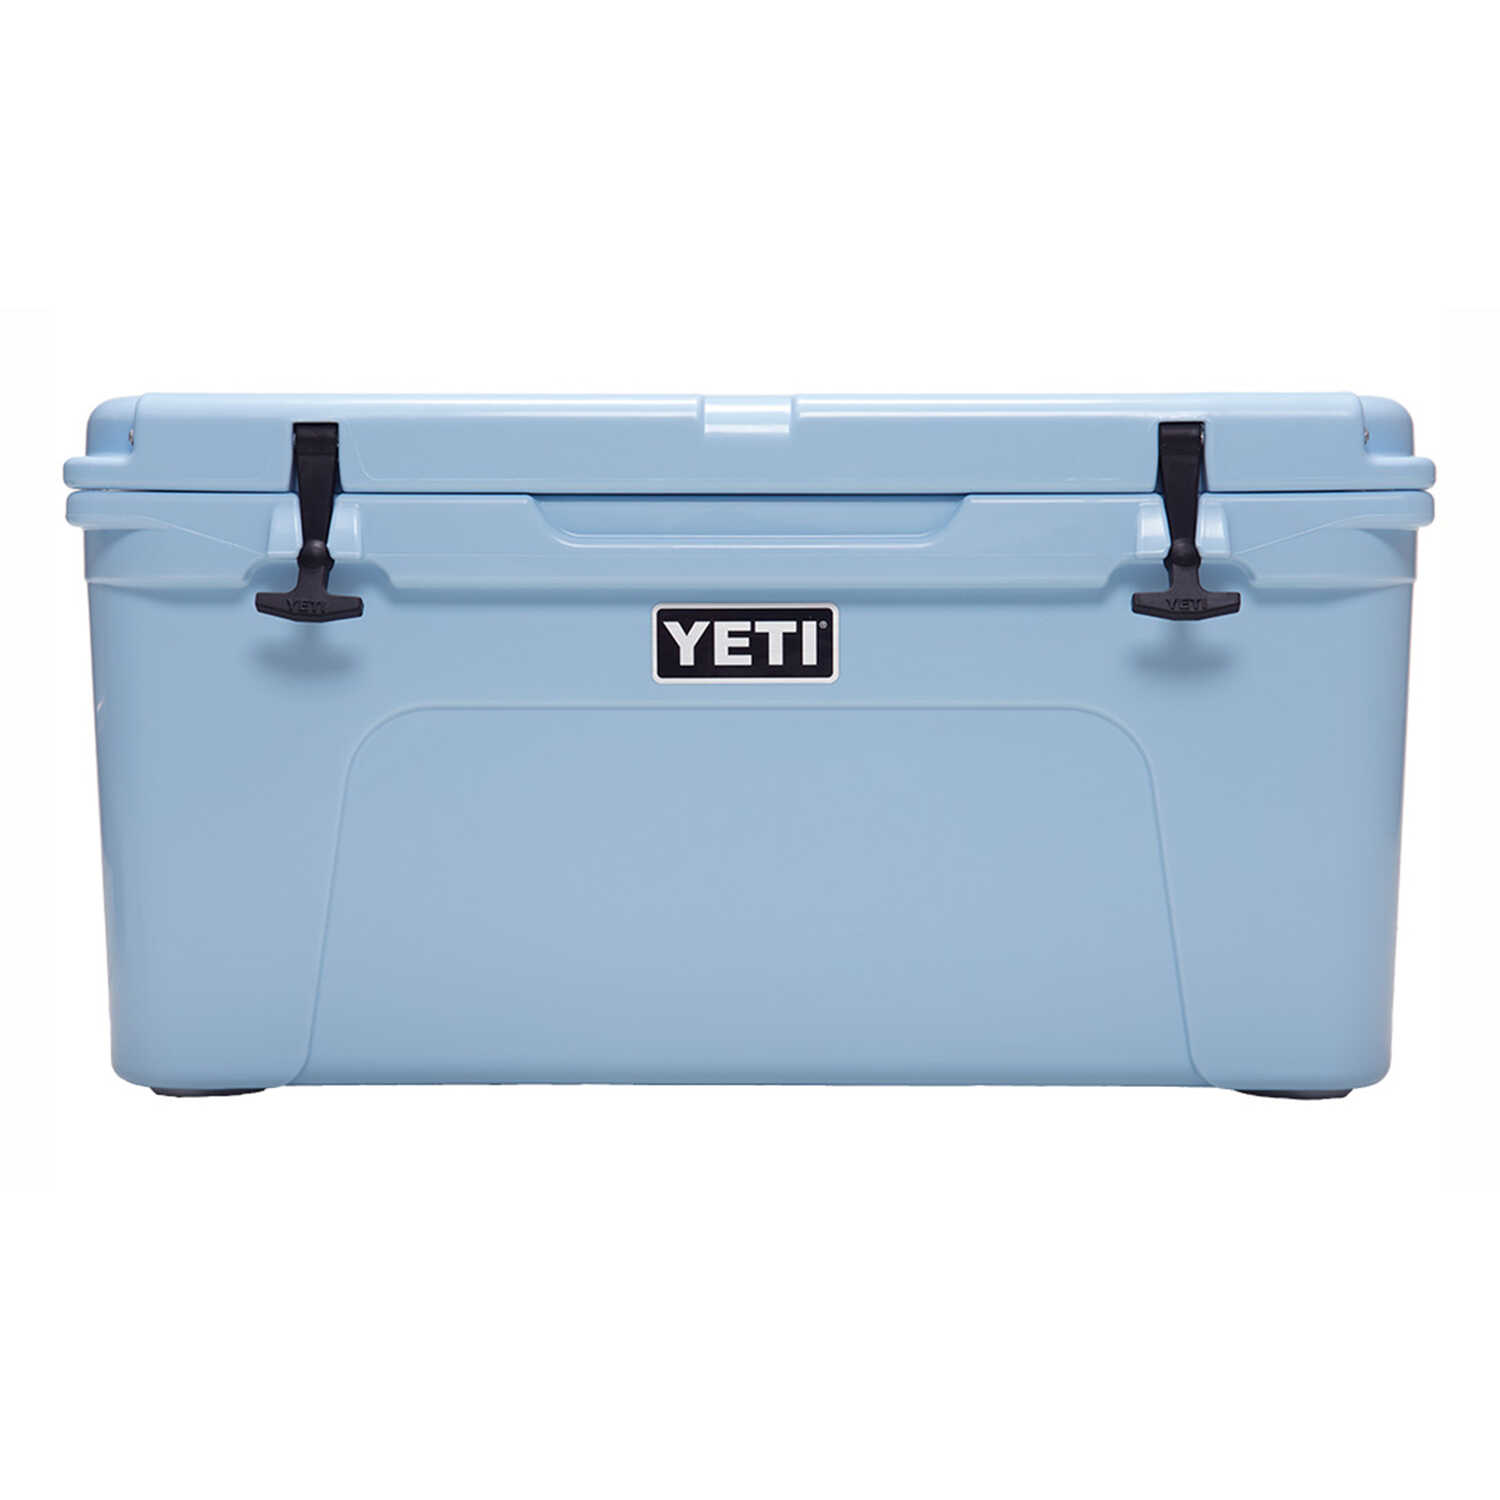 YETI  Tundra 65  Cooler  39 can capacity Blue